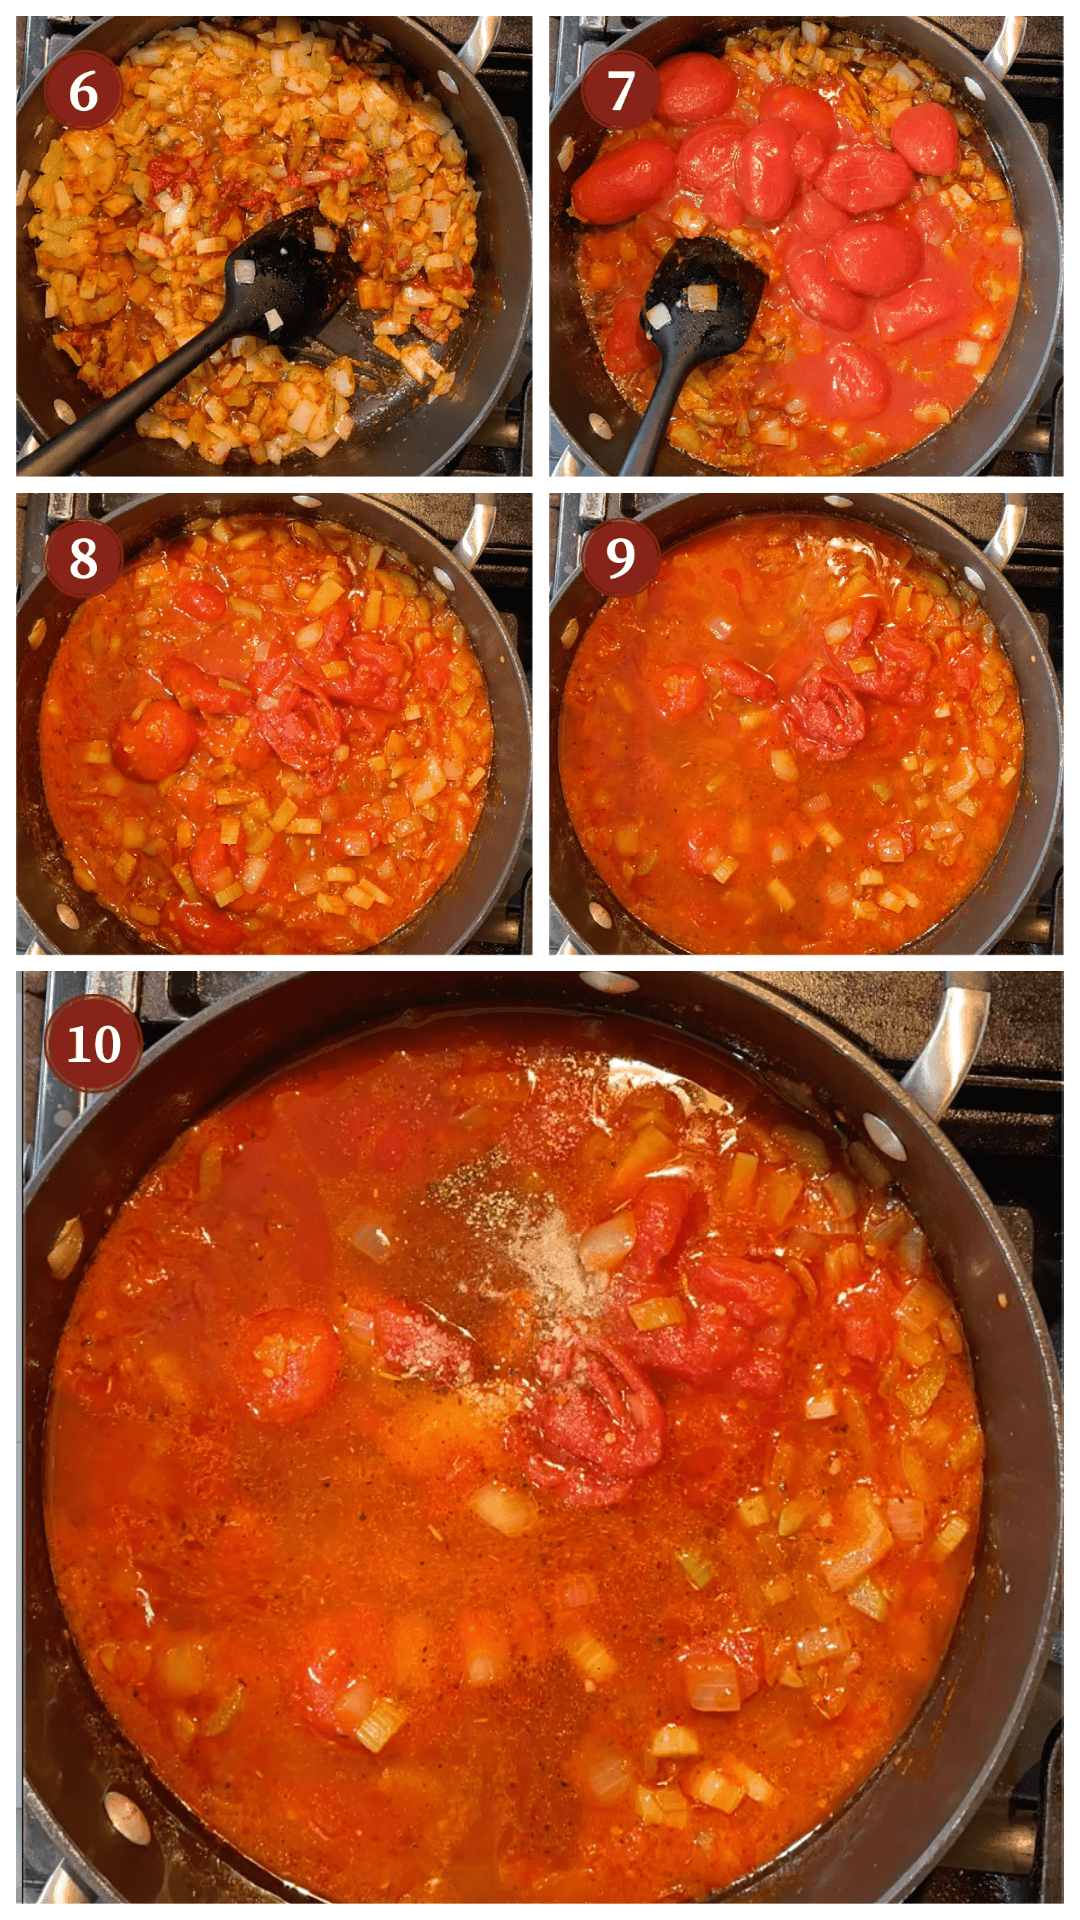 A collage of images showing how to make shrimp creole, steps 6 - 10.